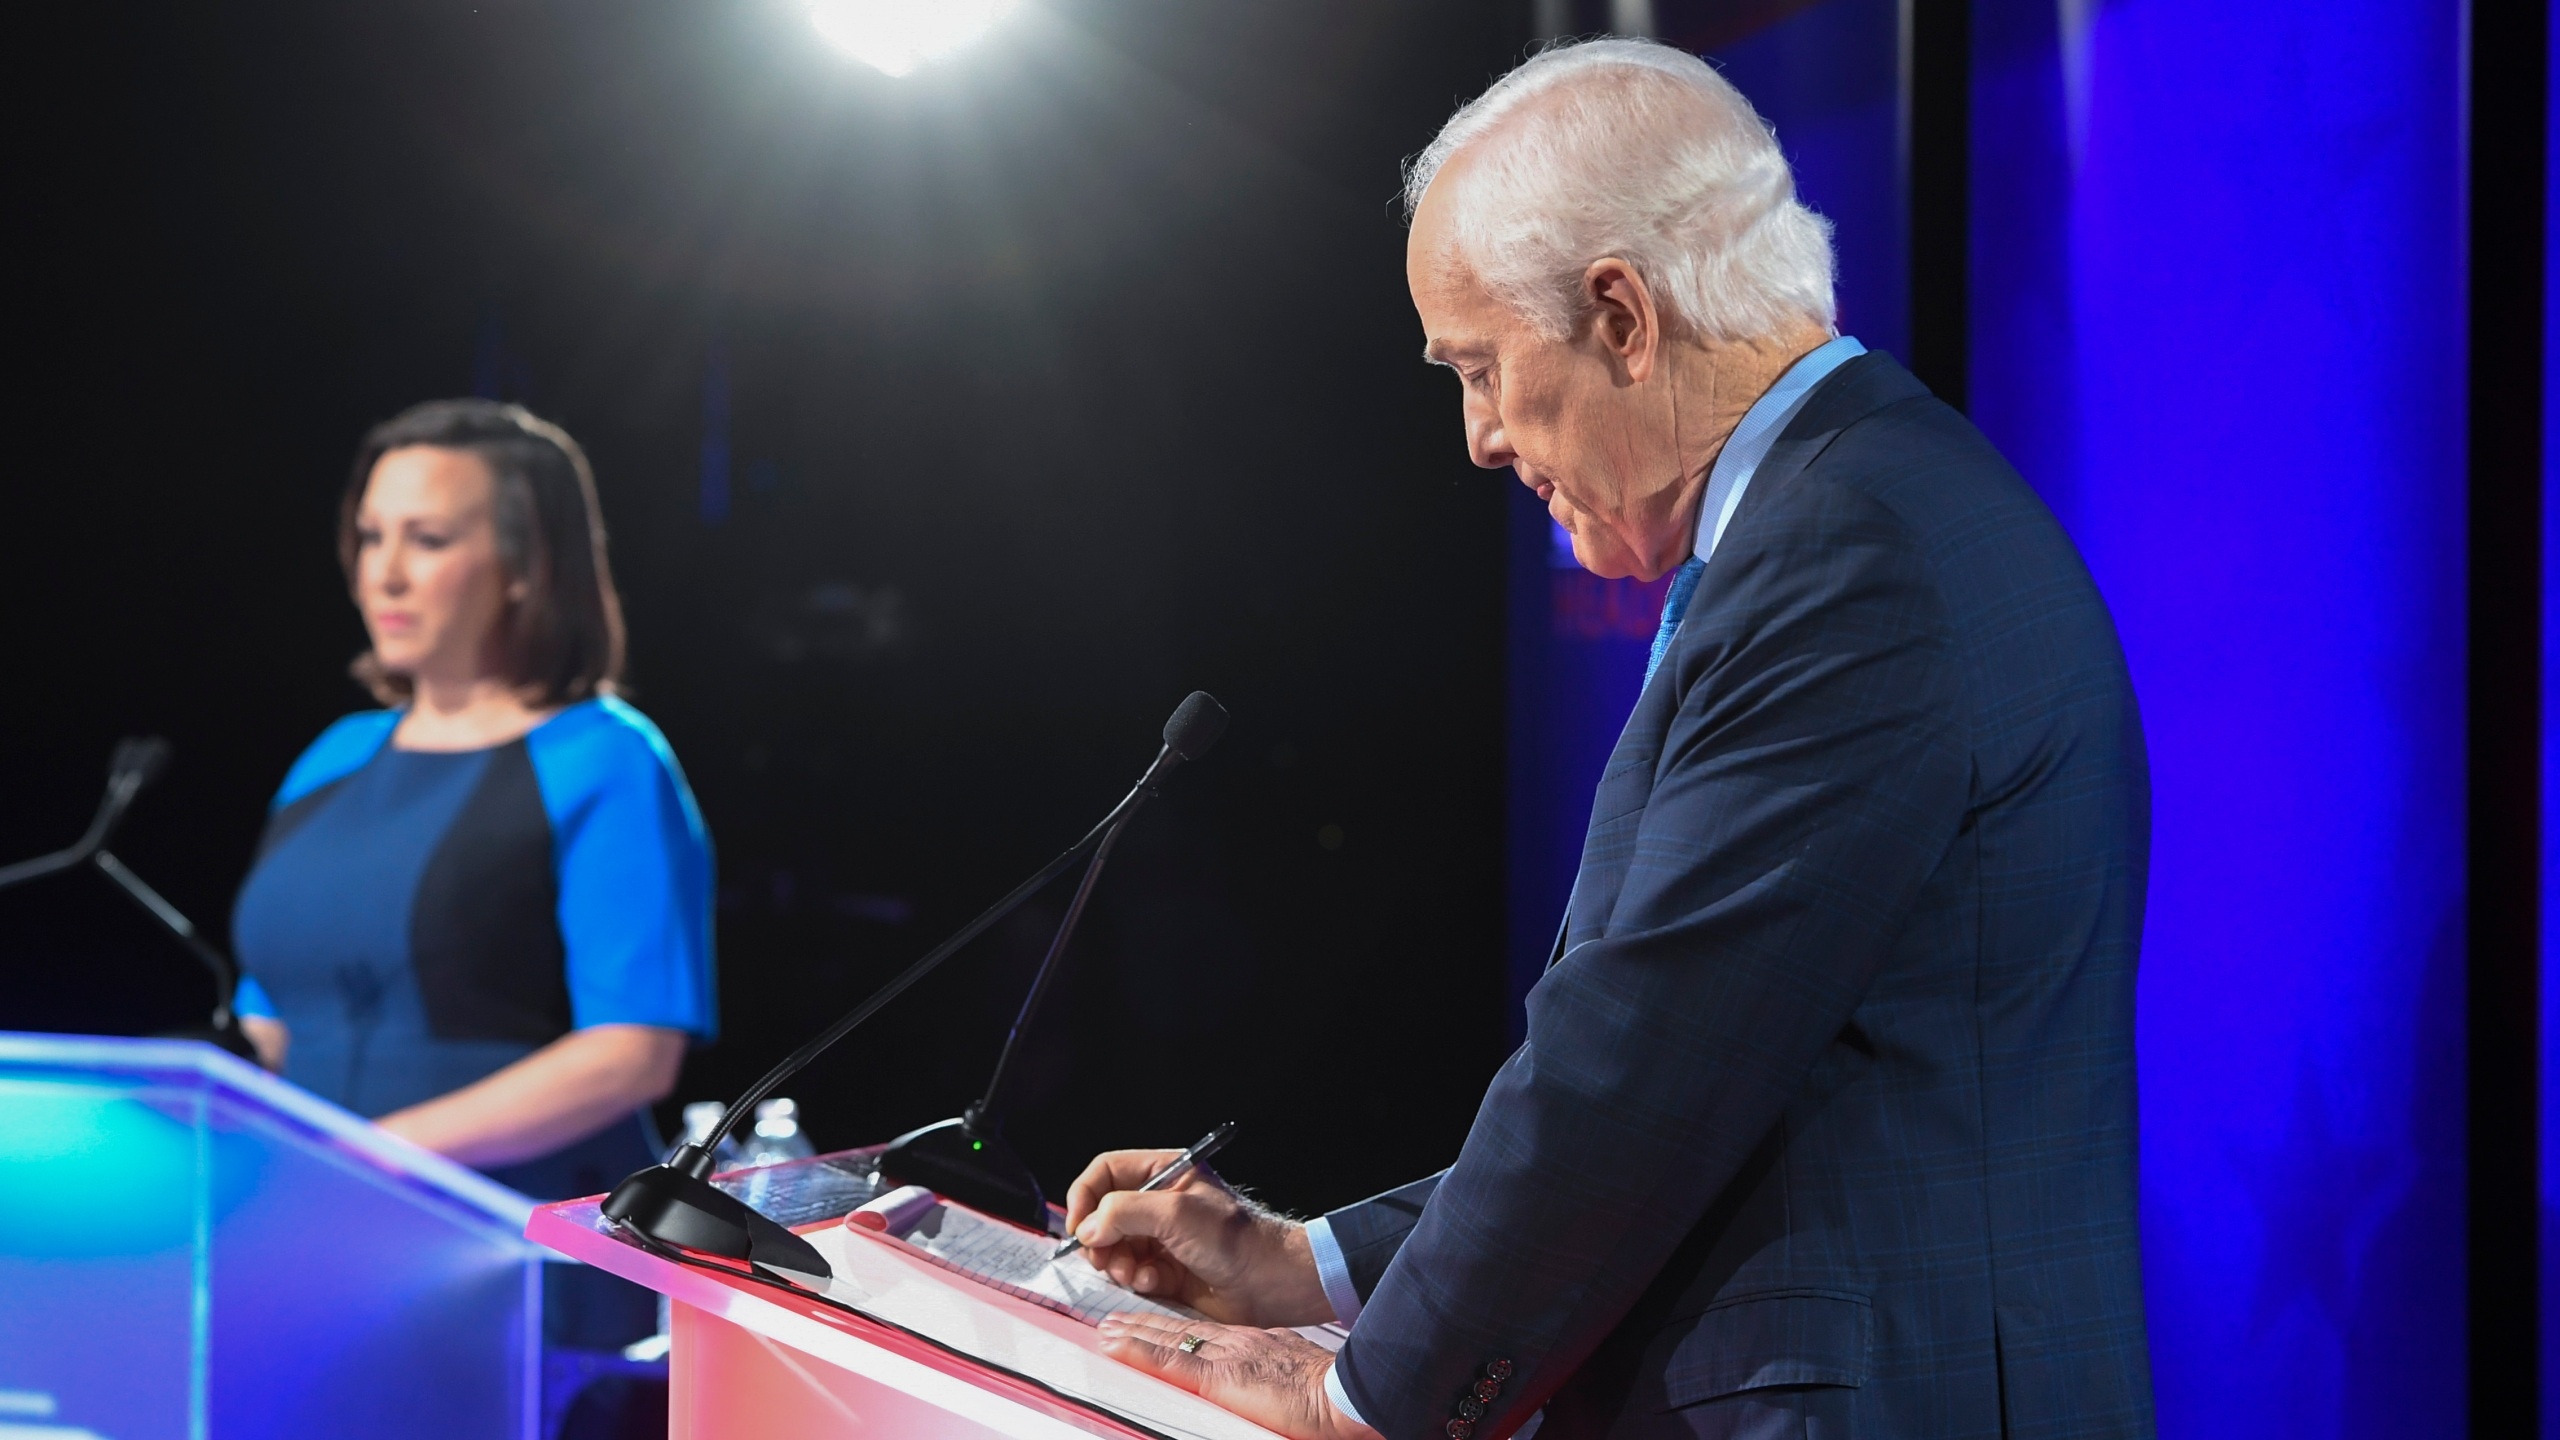 Texan MJ Hegar Debates John Cornyn For Senate